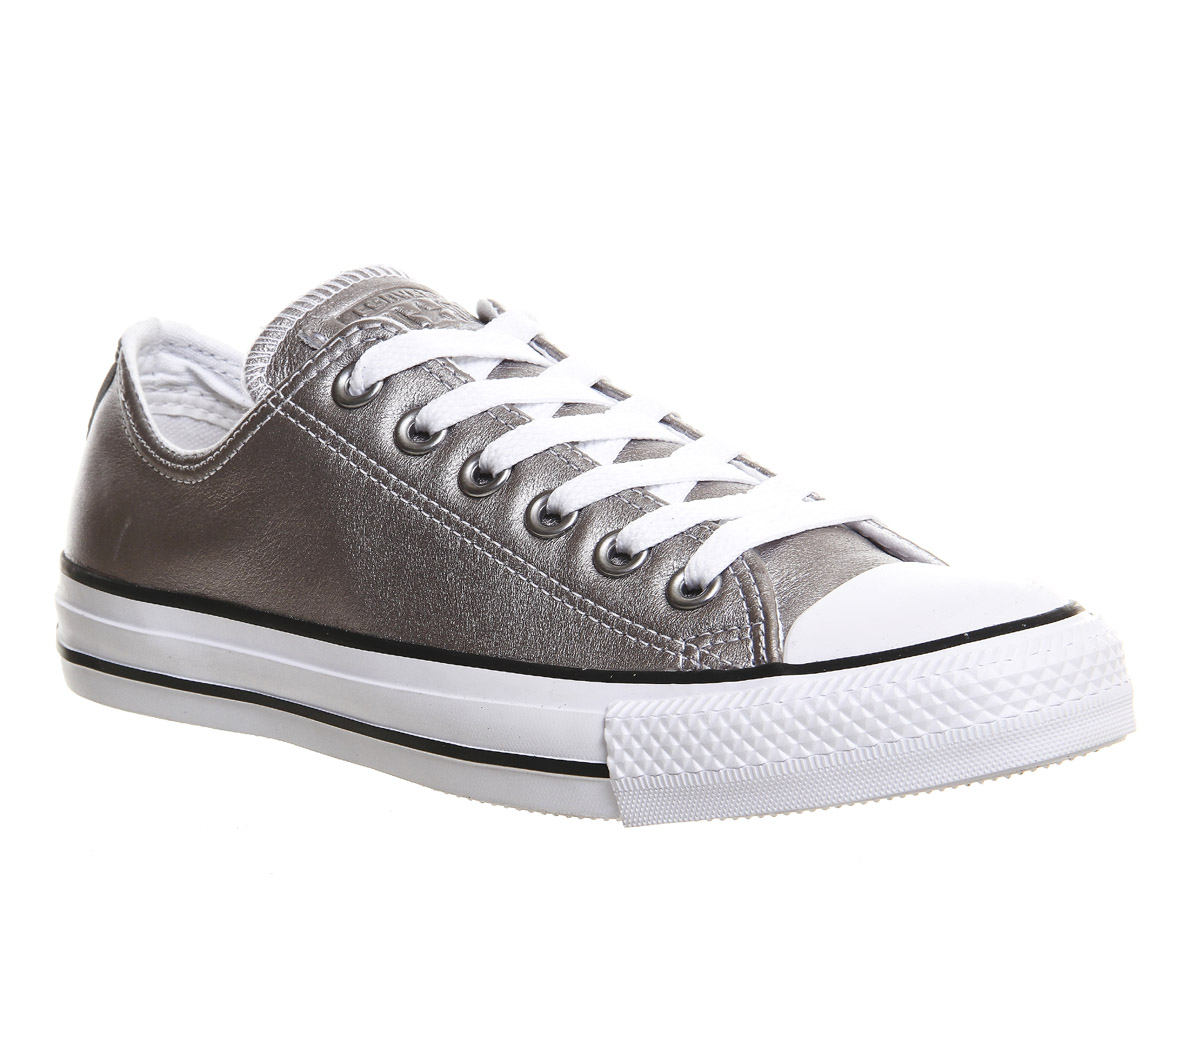 583681d5c Sentinel Converse All Star Low Leather New Silver Exclusive Trainers Shoes